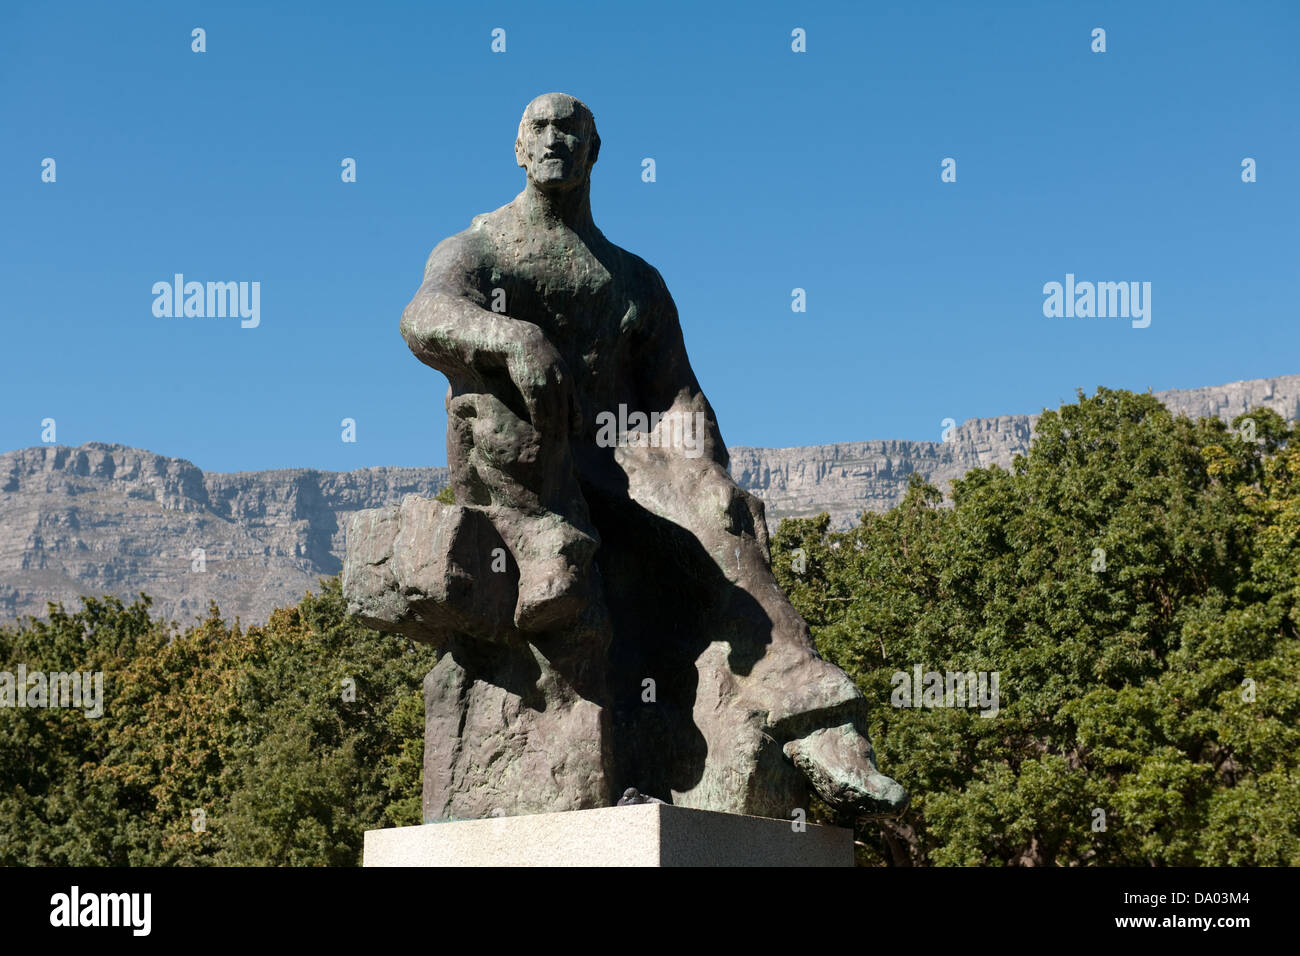 Jan smuts Statue, The Company's Garden, Cape Town, South Africa - Stock Image